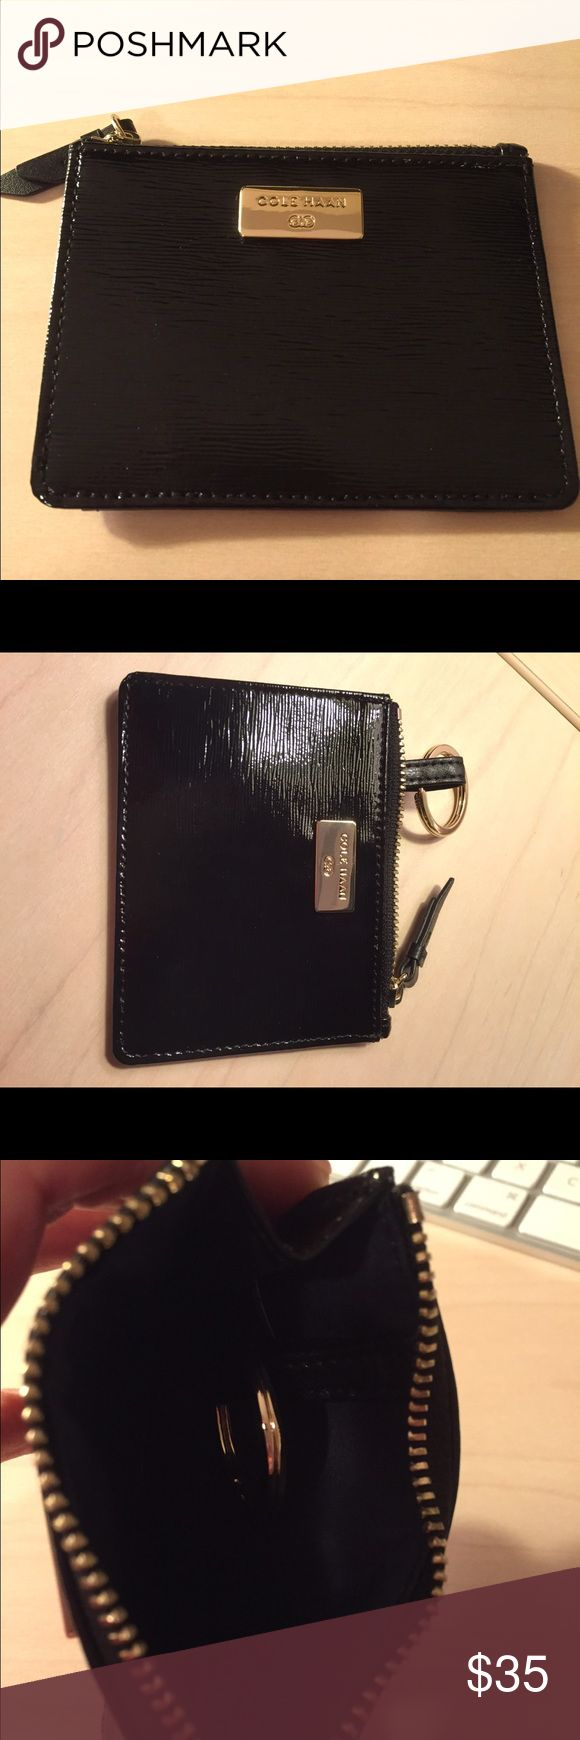 """Cole Haan patent key/money holder New and never been used Cole Haan key and money holder.  Patent black leather with clear insert for drivers license.  Gold zipper and front logo.  Measures approx 4.5"""" X 3.5"""". Cole Haan Accessories Key & Card Holders"""